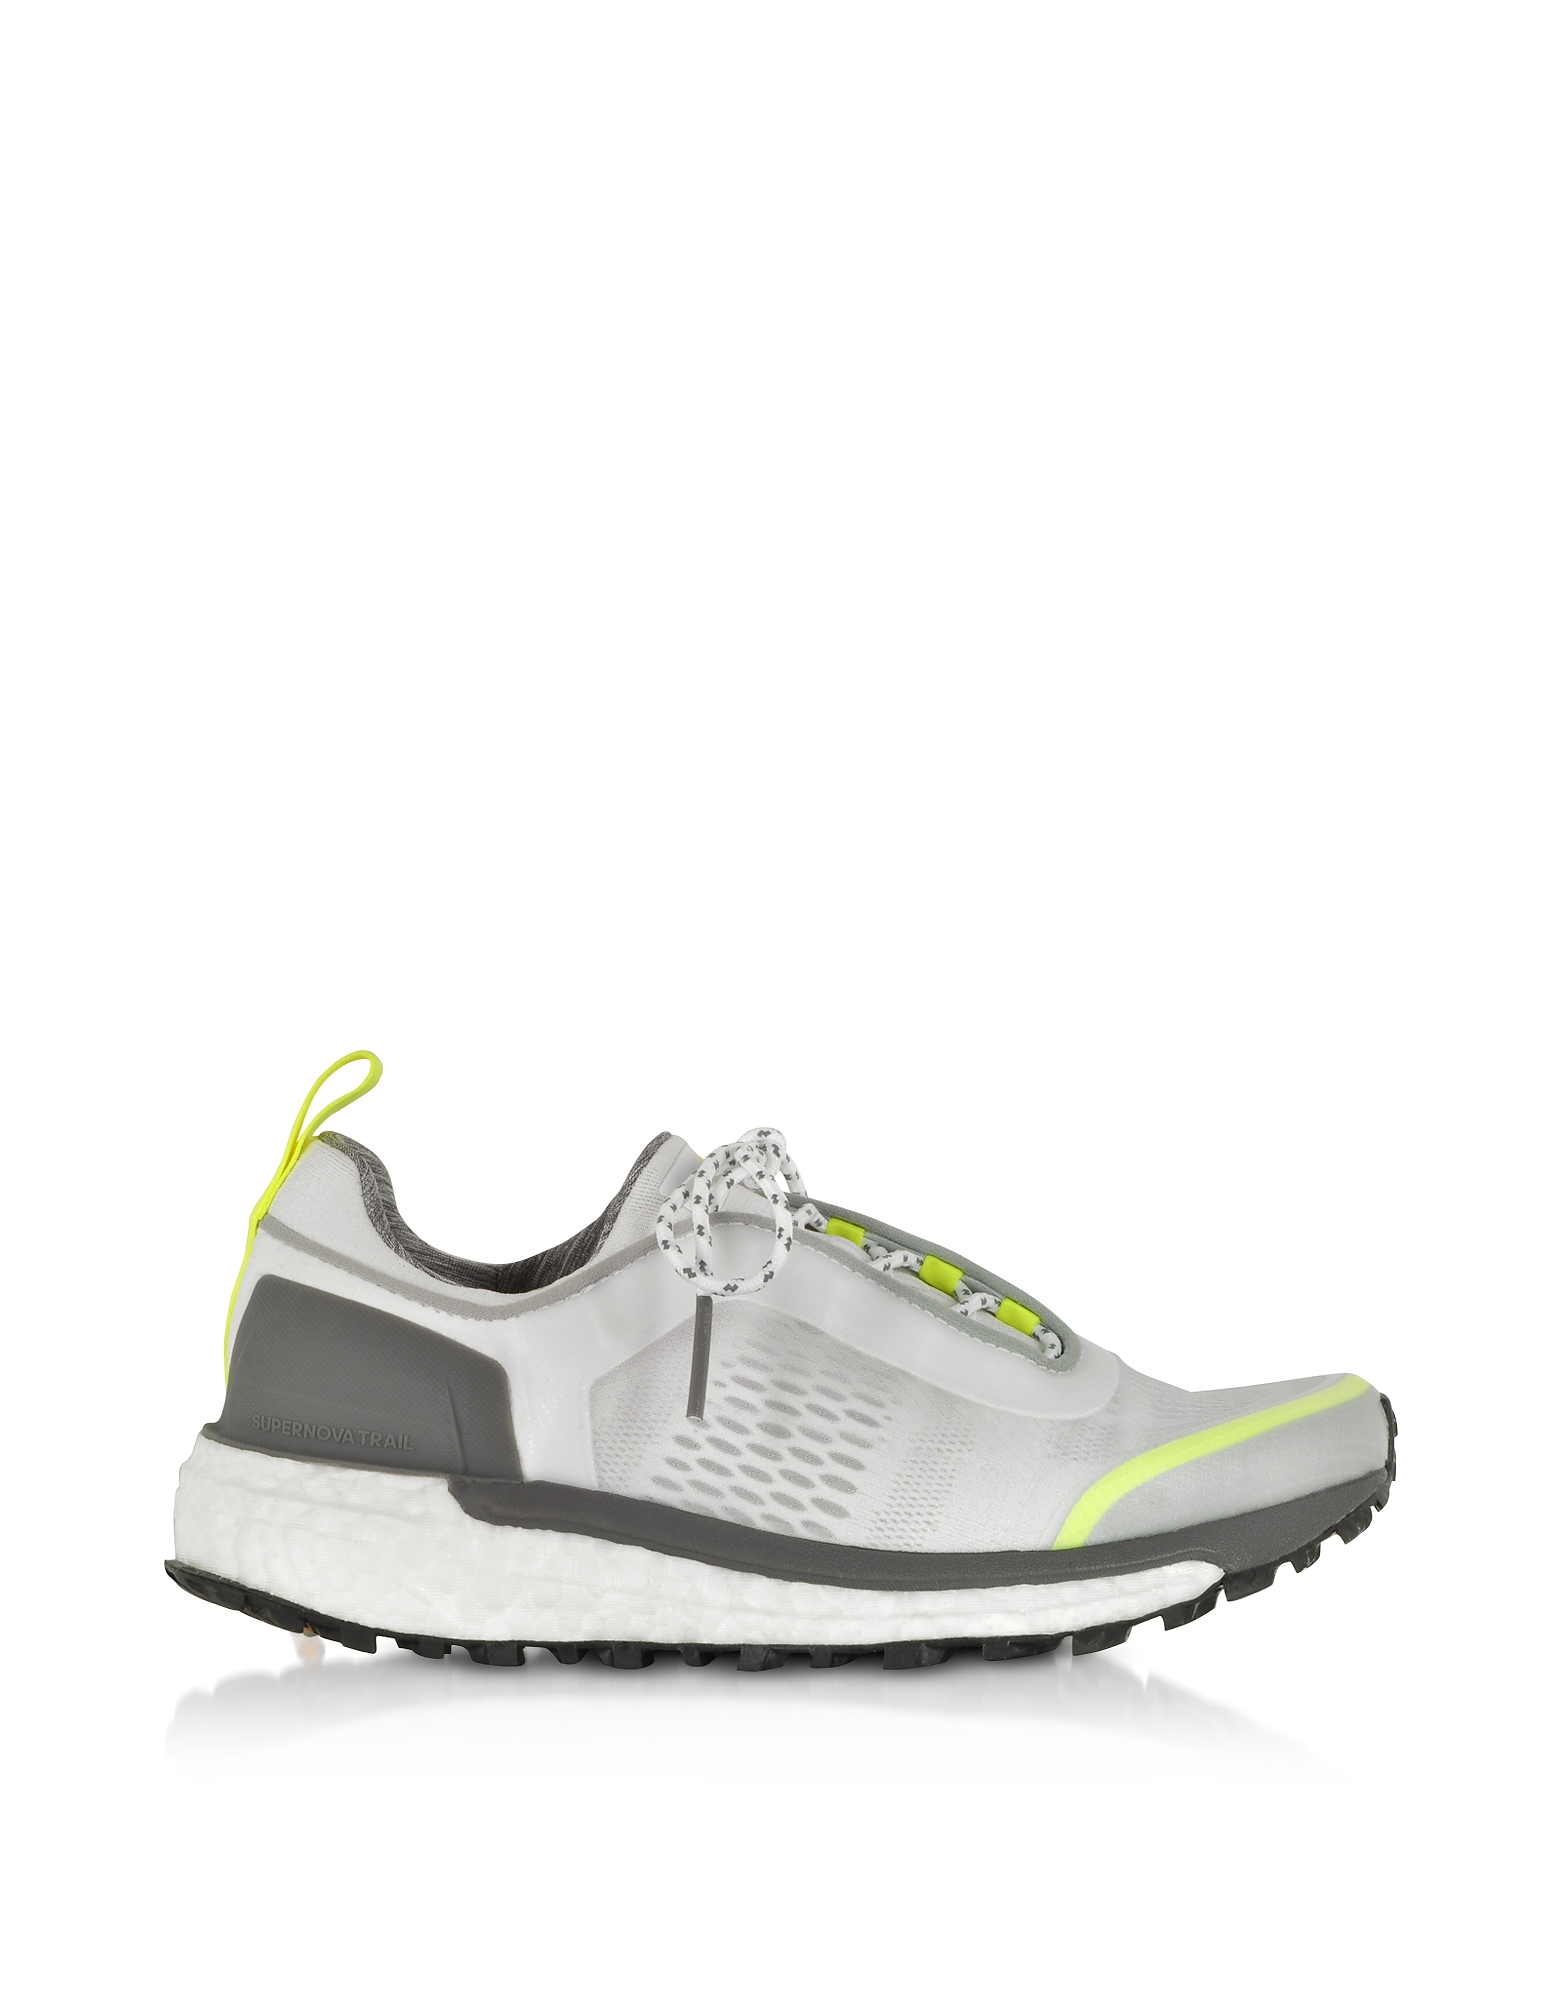 White Solar Yellow Supernova Trail Sneakers